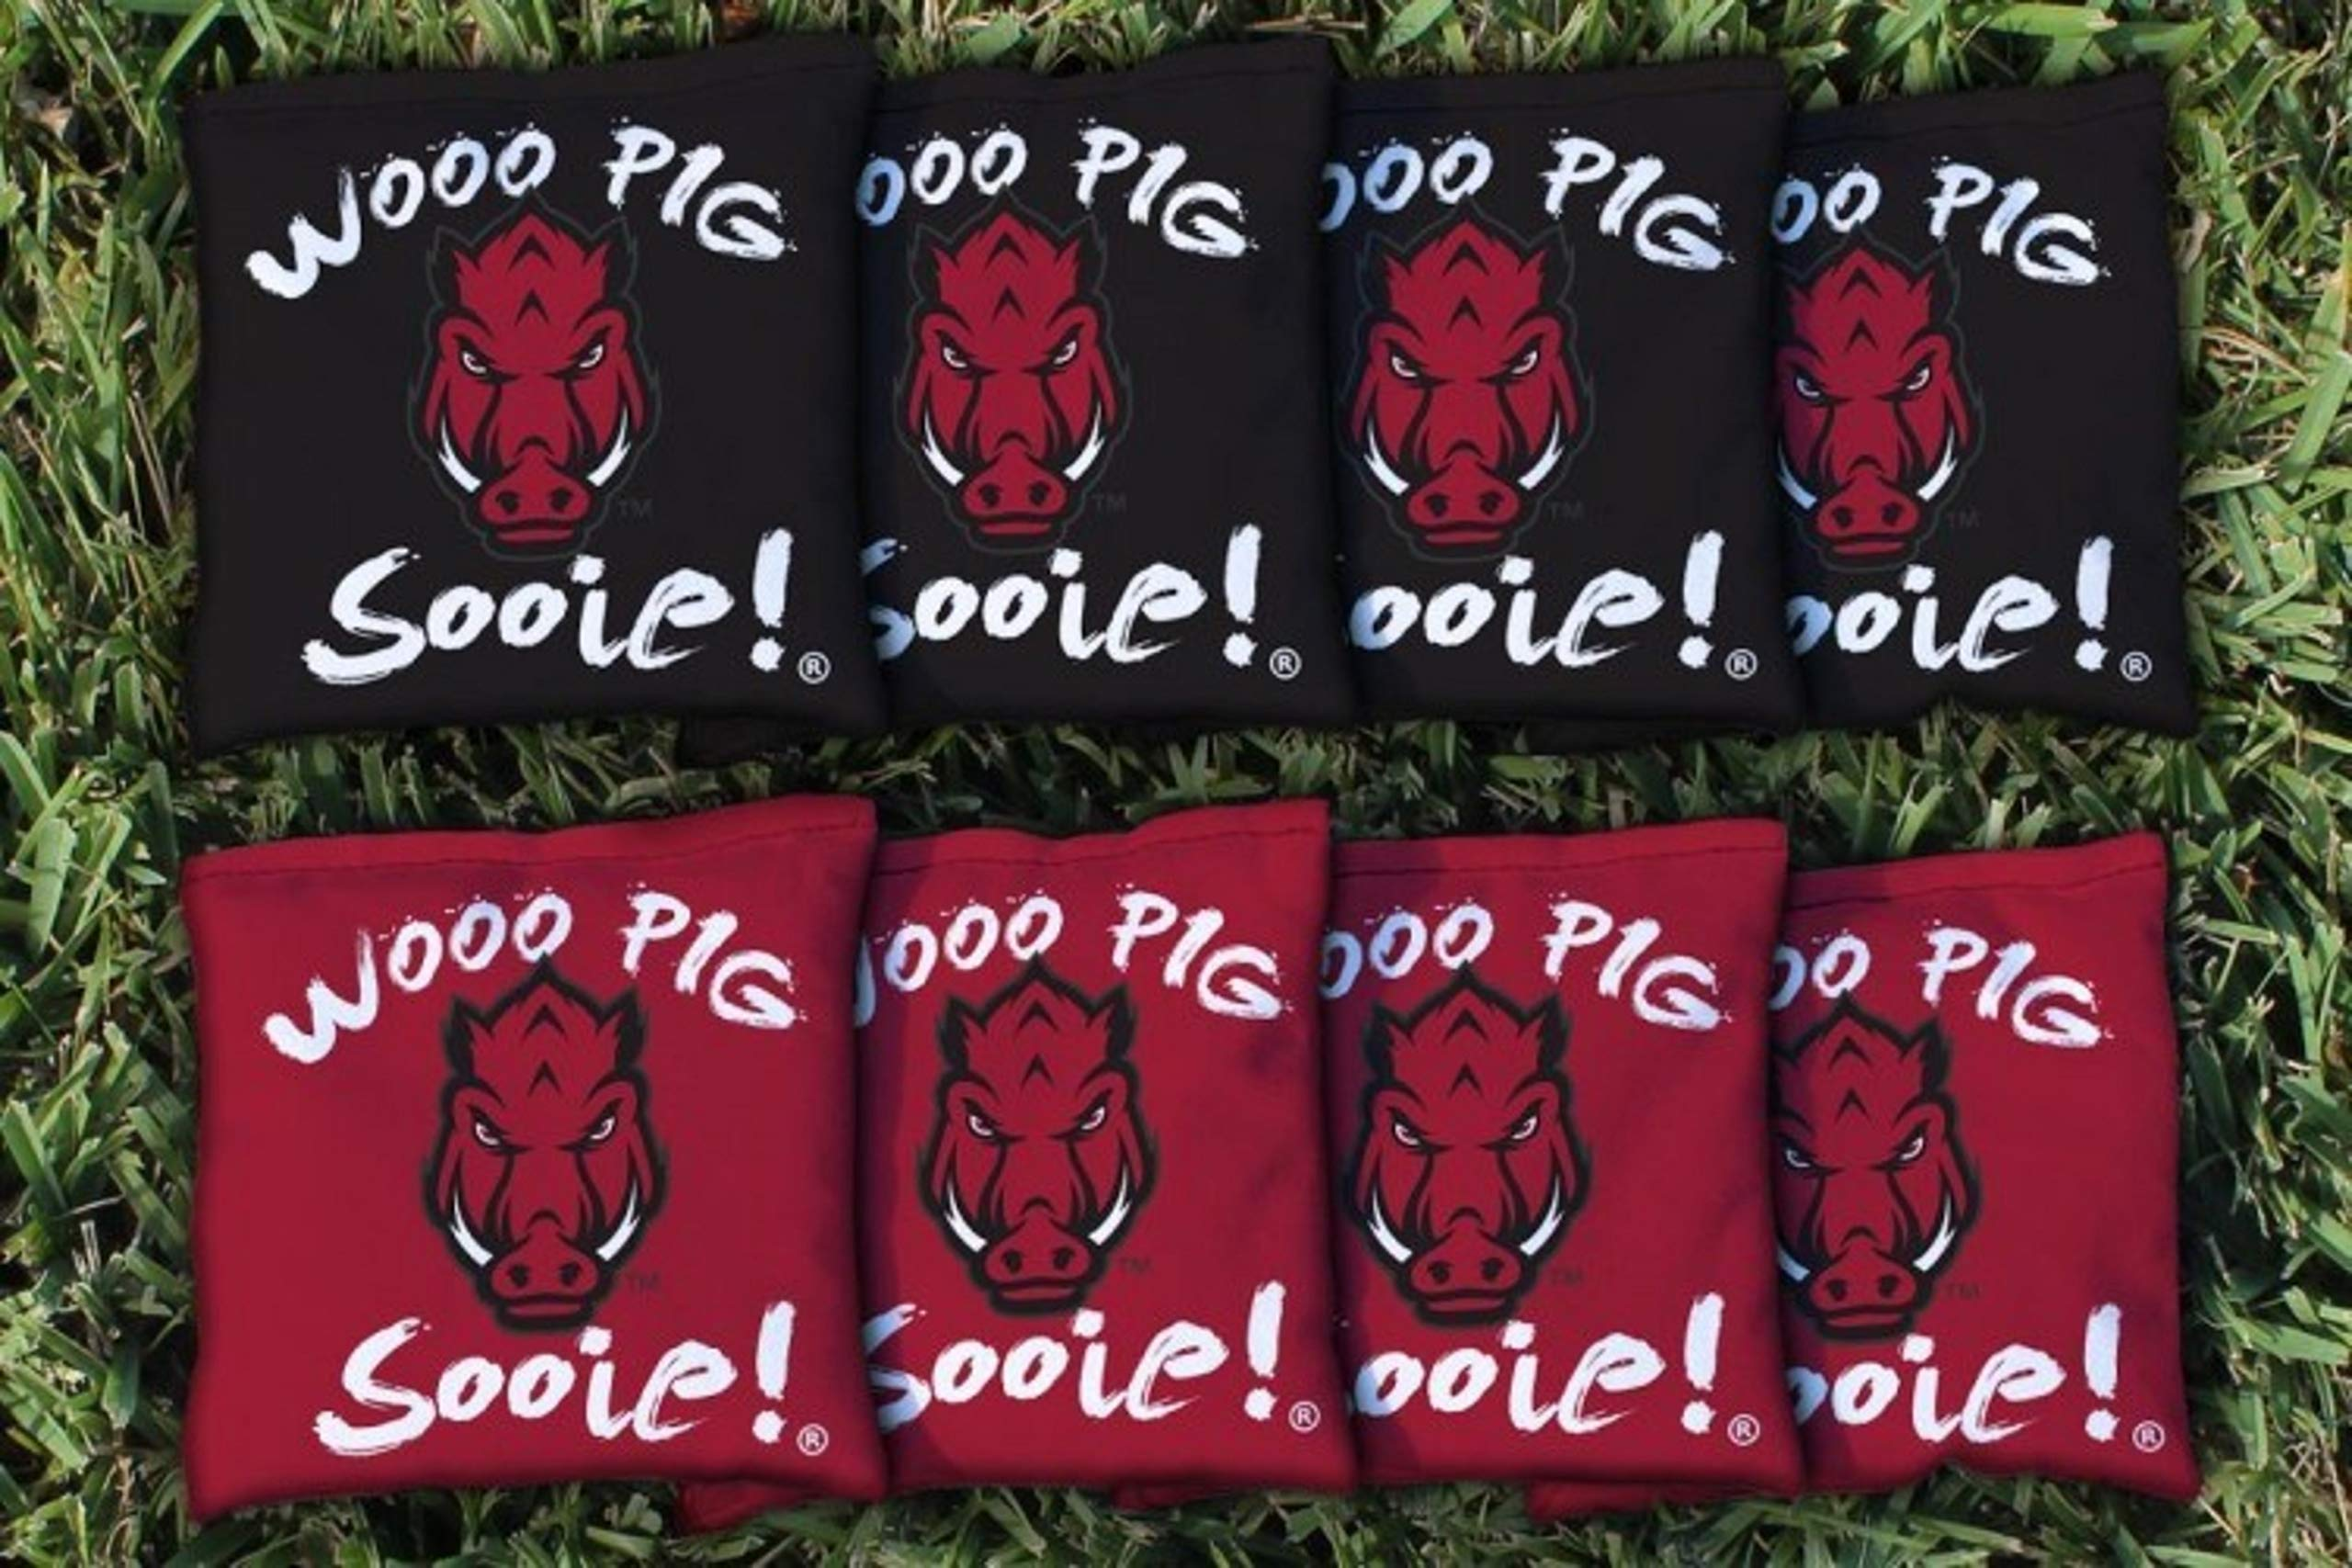 Victory Tailgate NCAA Regulation All Weather Cornhole Game Bag Set - 8 Bags Included - Arkansas Razorbacks Wooo Pig Sooie by Victory Tailgate